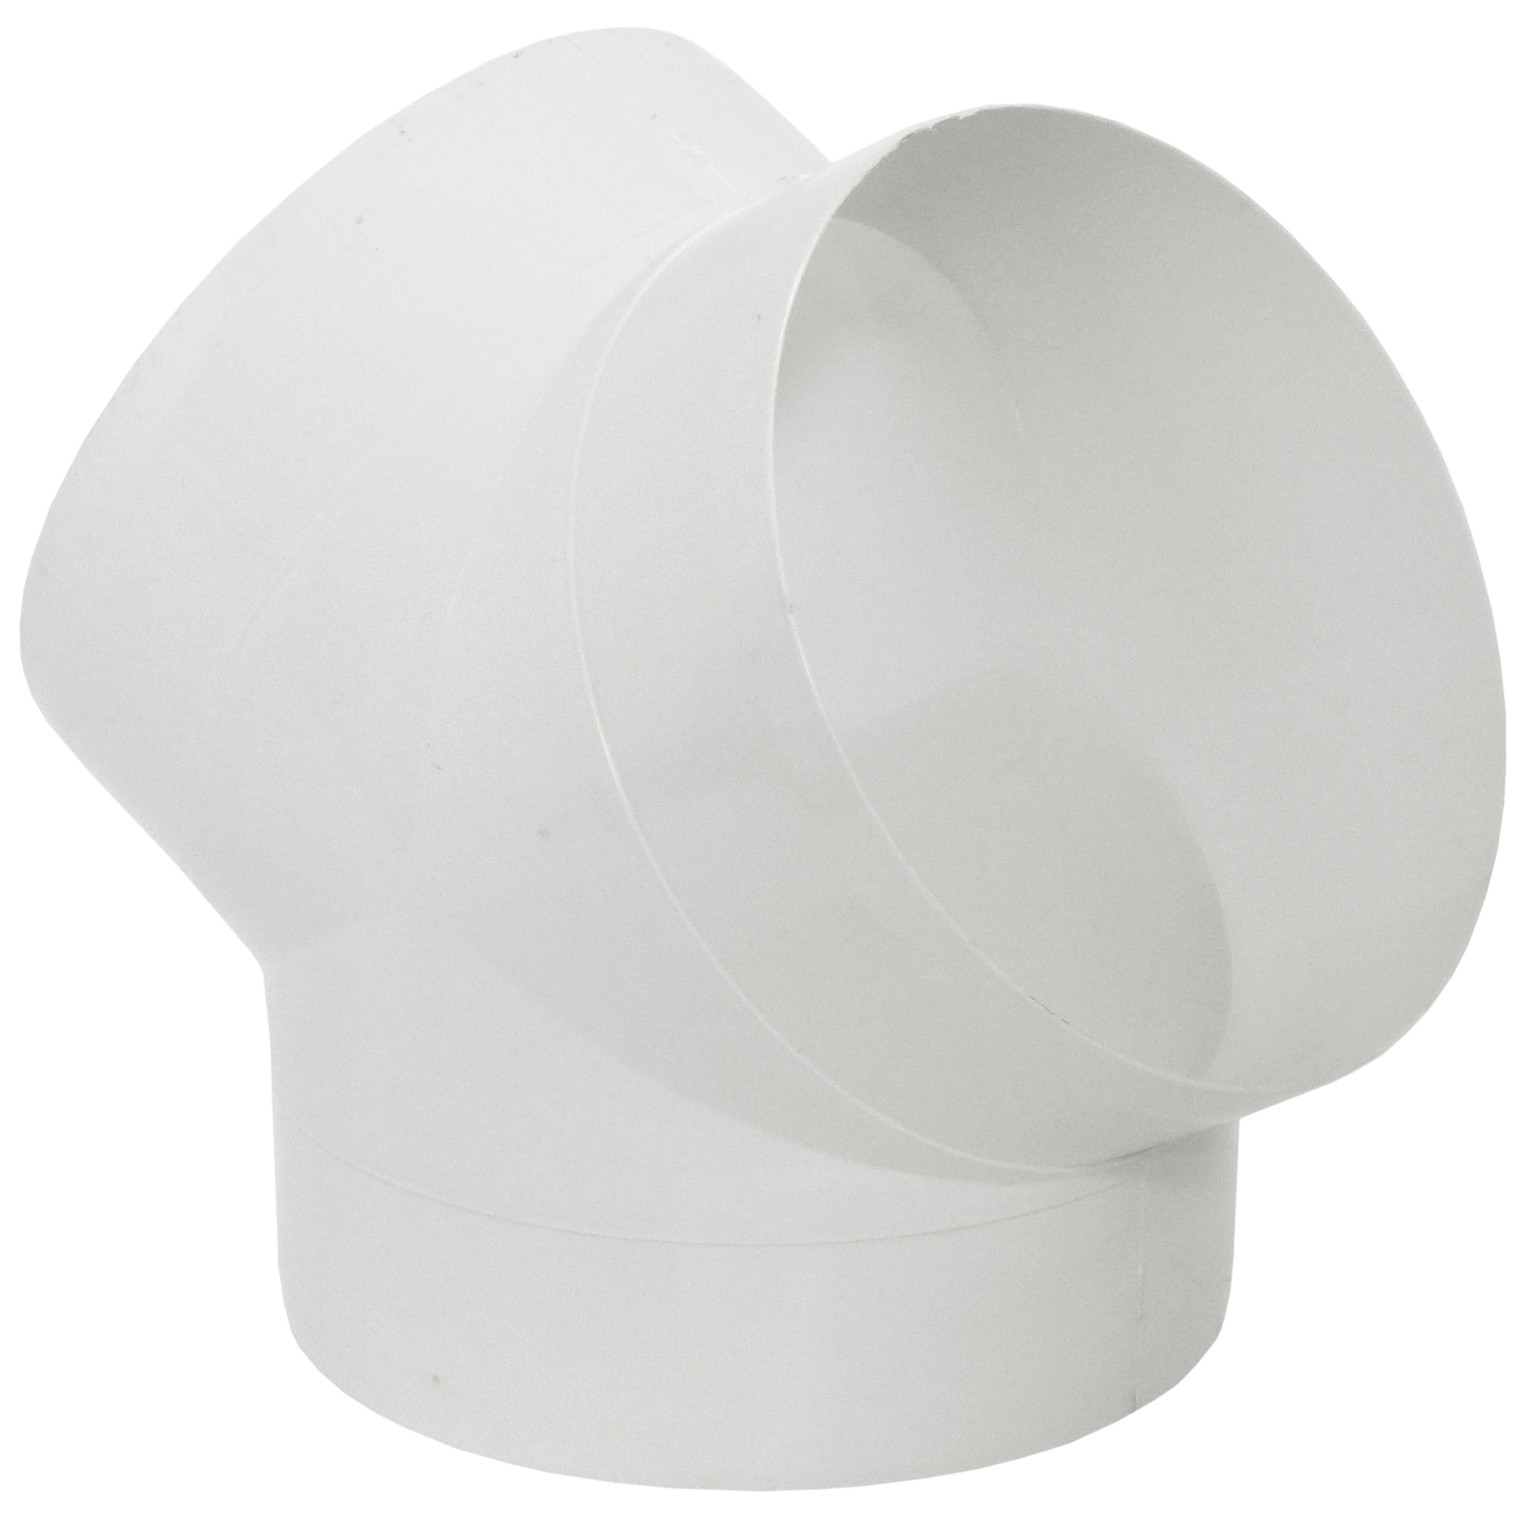 Manrose Round Ducting Pipe Y Piece - White, 150mm